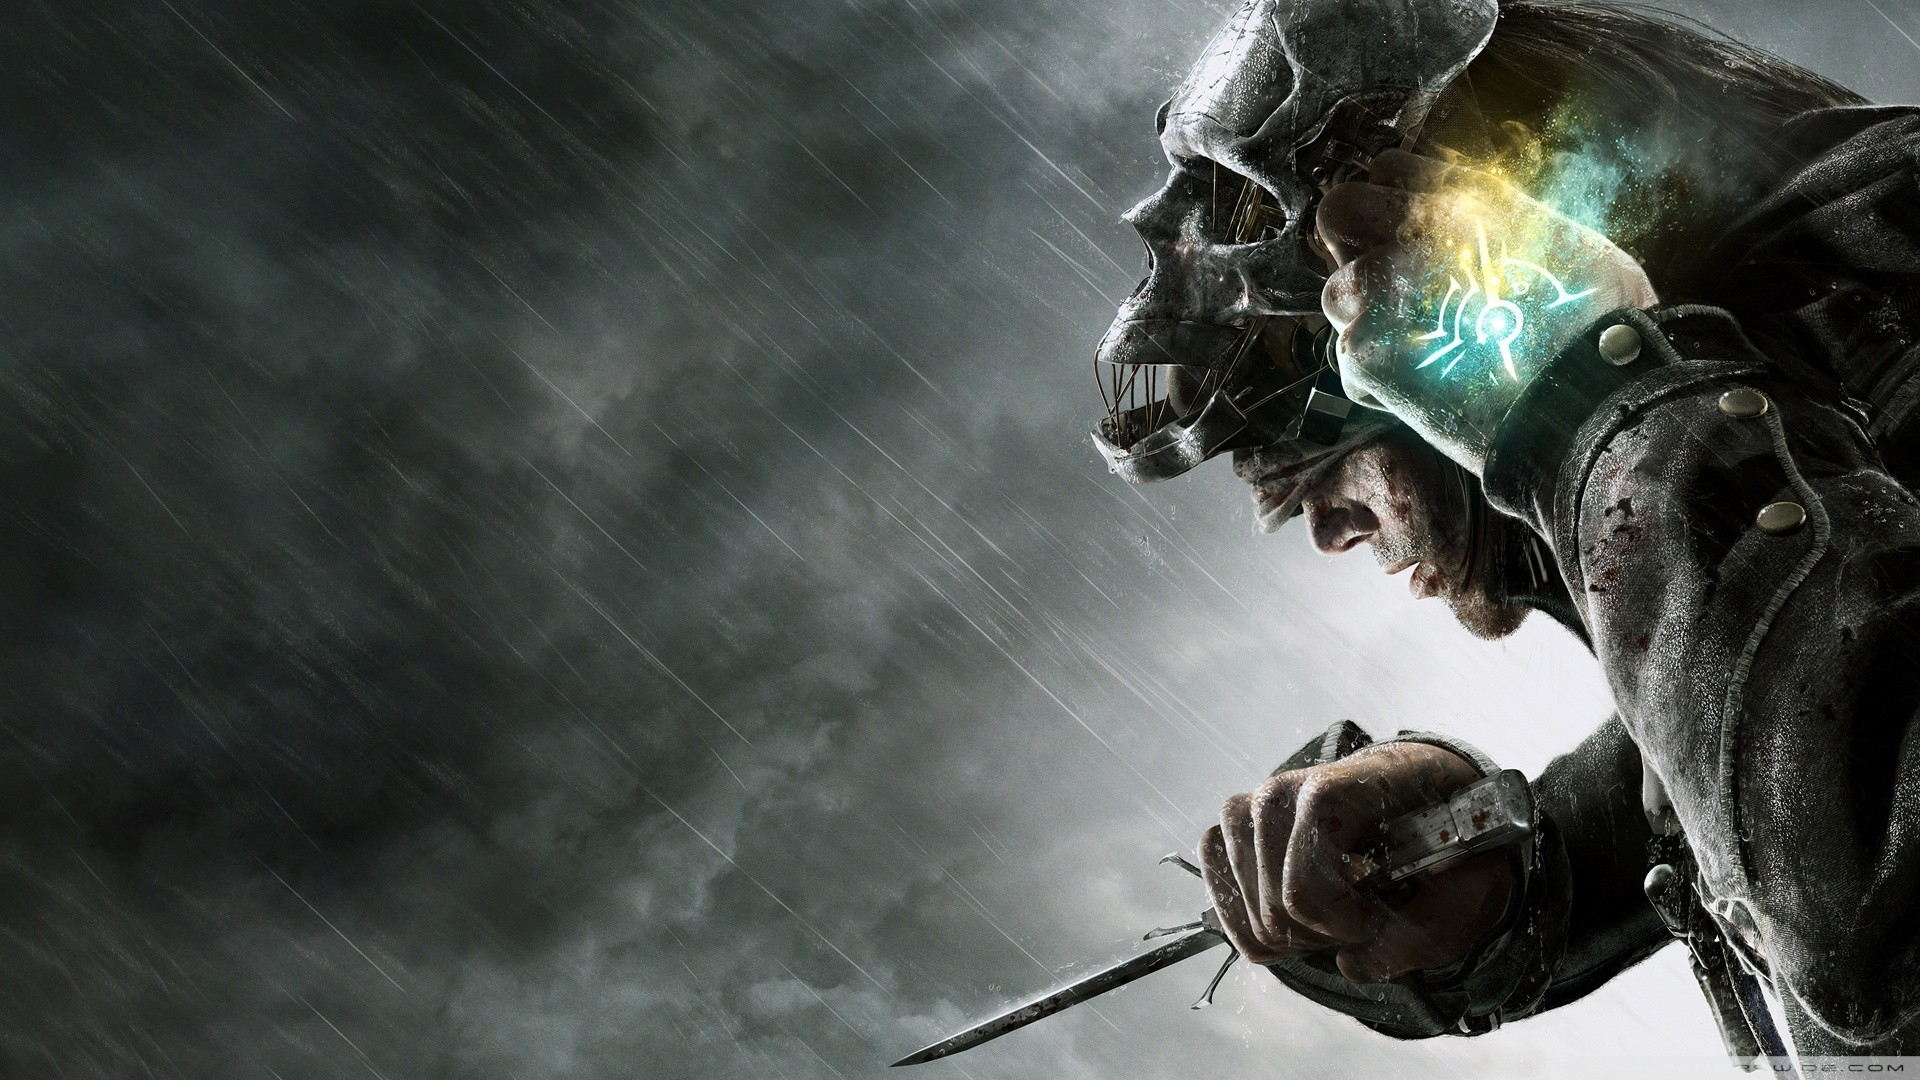 1920x1080 Dishonored_Header